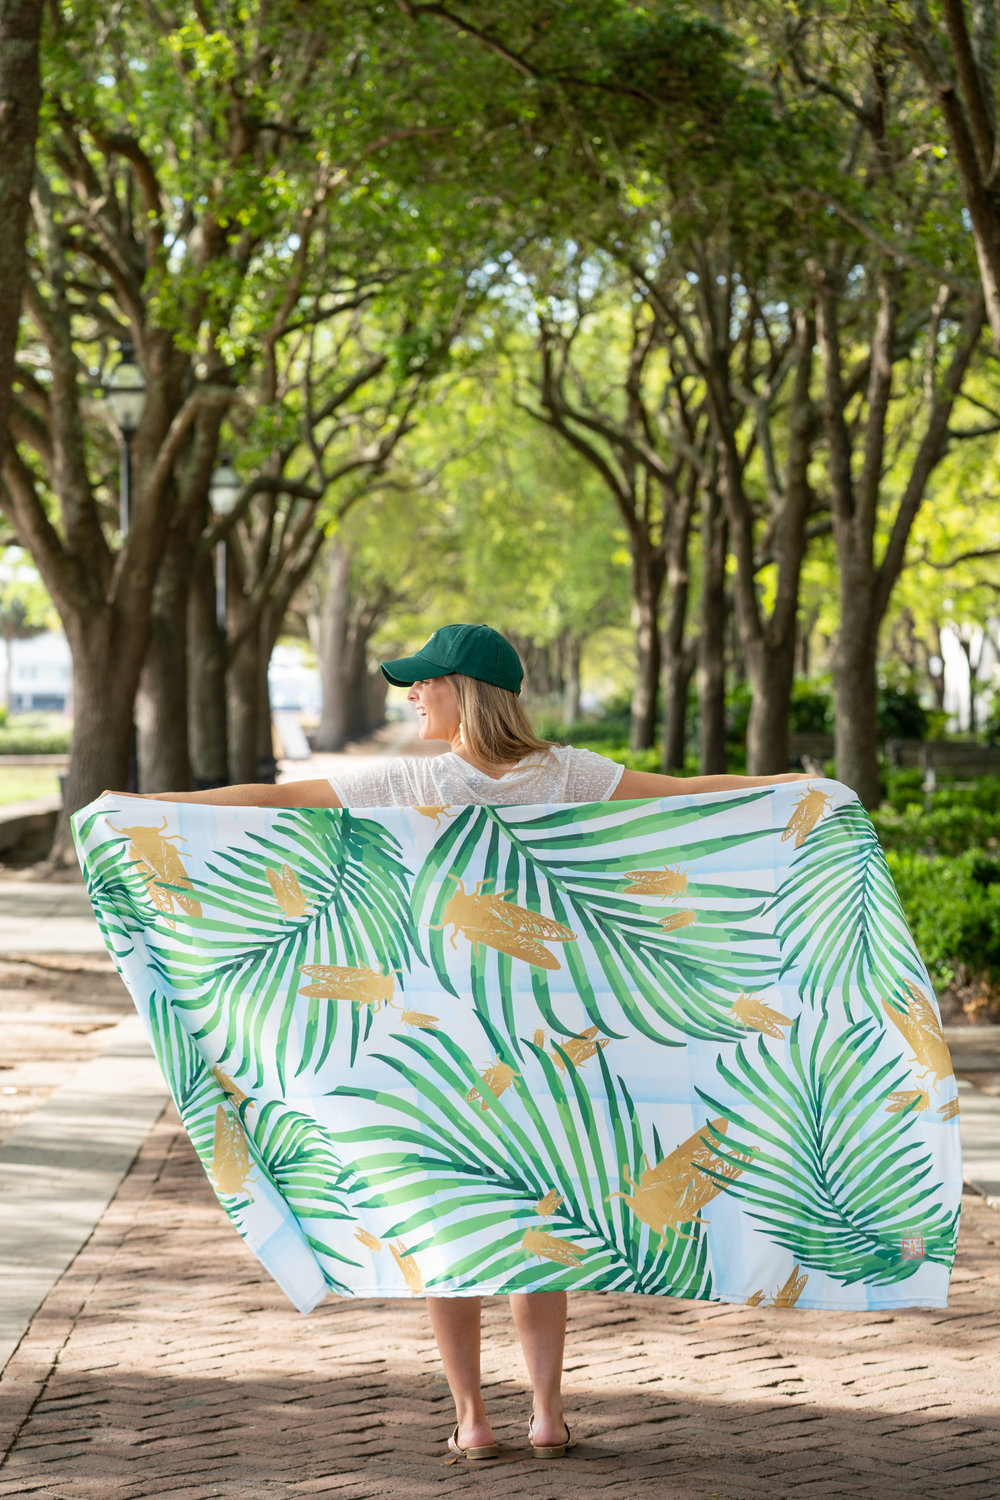 A true Charleston mix...goldbugs, palmetto trees, and lots of sunshine! IT'S WARM, NOW LET'S SWARM! ZAGS x Goldbug Collection